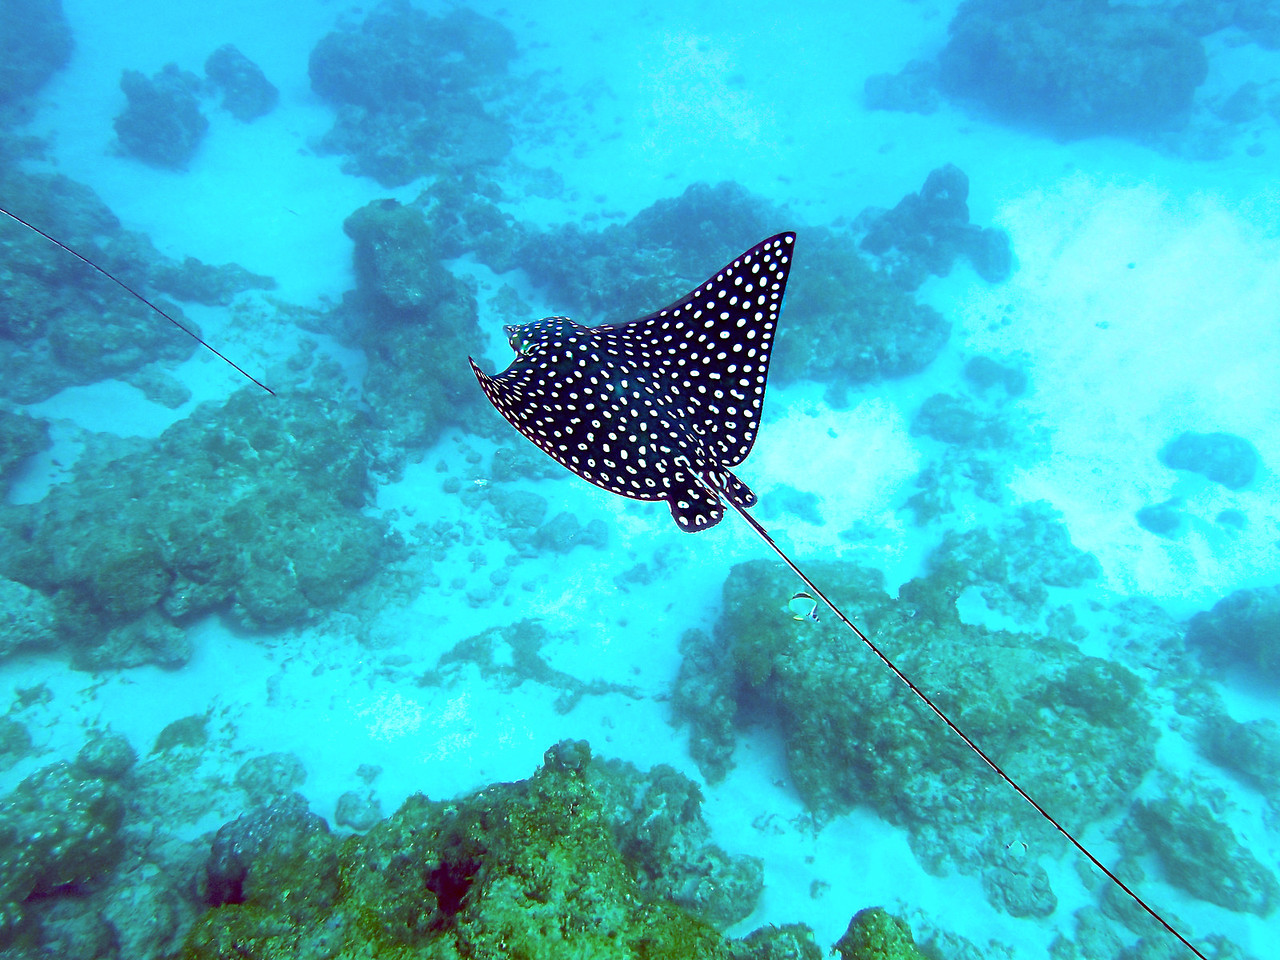 Spotted eagle ray (Aetobatus narinari) at Isla del Cano.